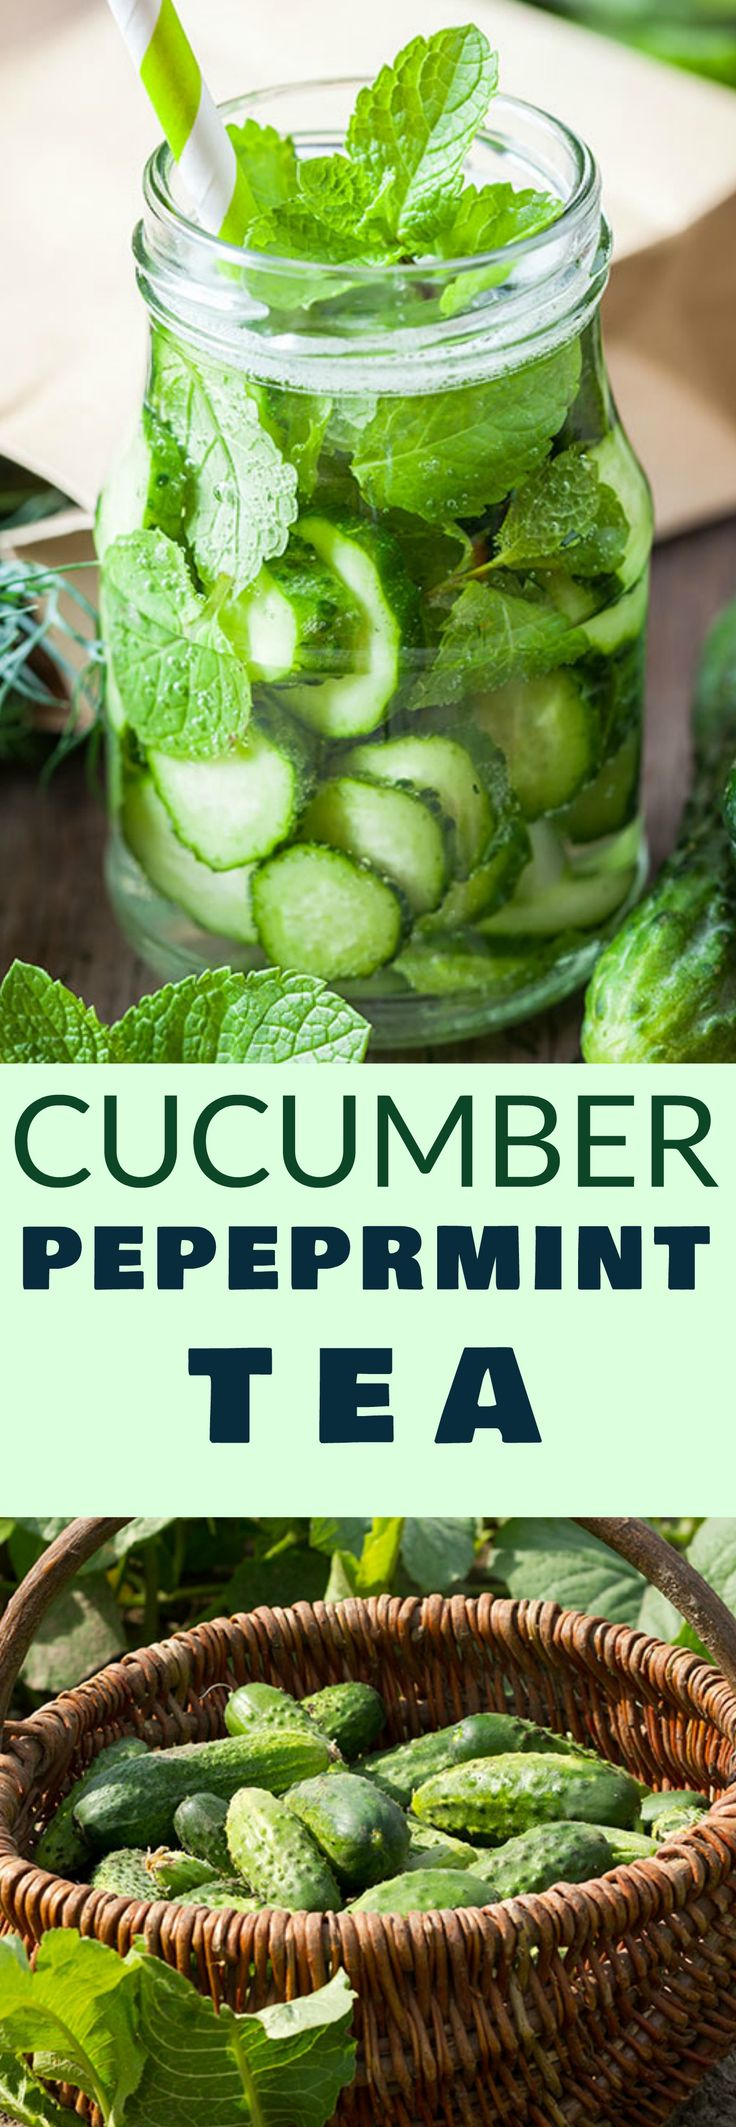 CUCUMBER PEPPERMINT Tea is my favorite Summer drink! This homemade cup of green tea includes cucumbers, peppermint, honey and a splash of lemon juice to make a healthy and fresh drink. You can drink it hot or iced. The health benefits of this tea are grea